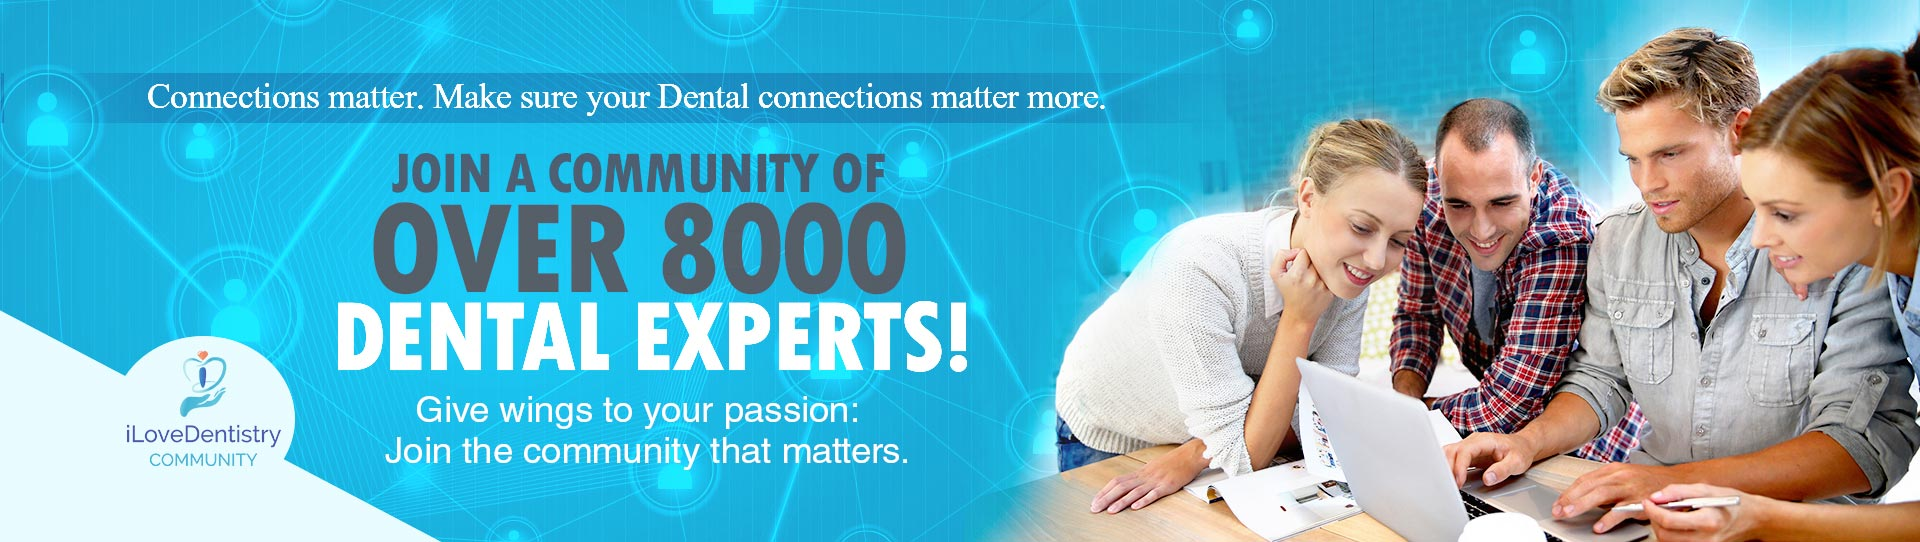 Over 4300 Dental Experts